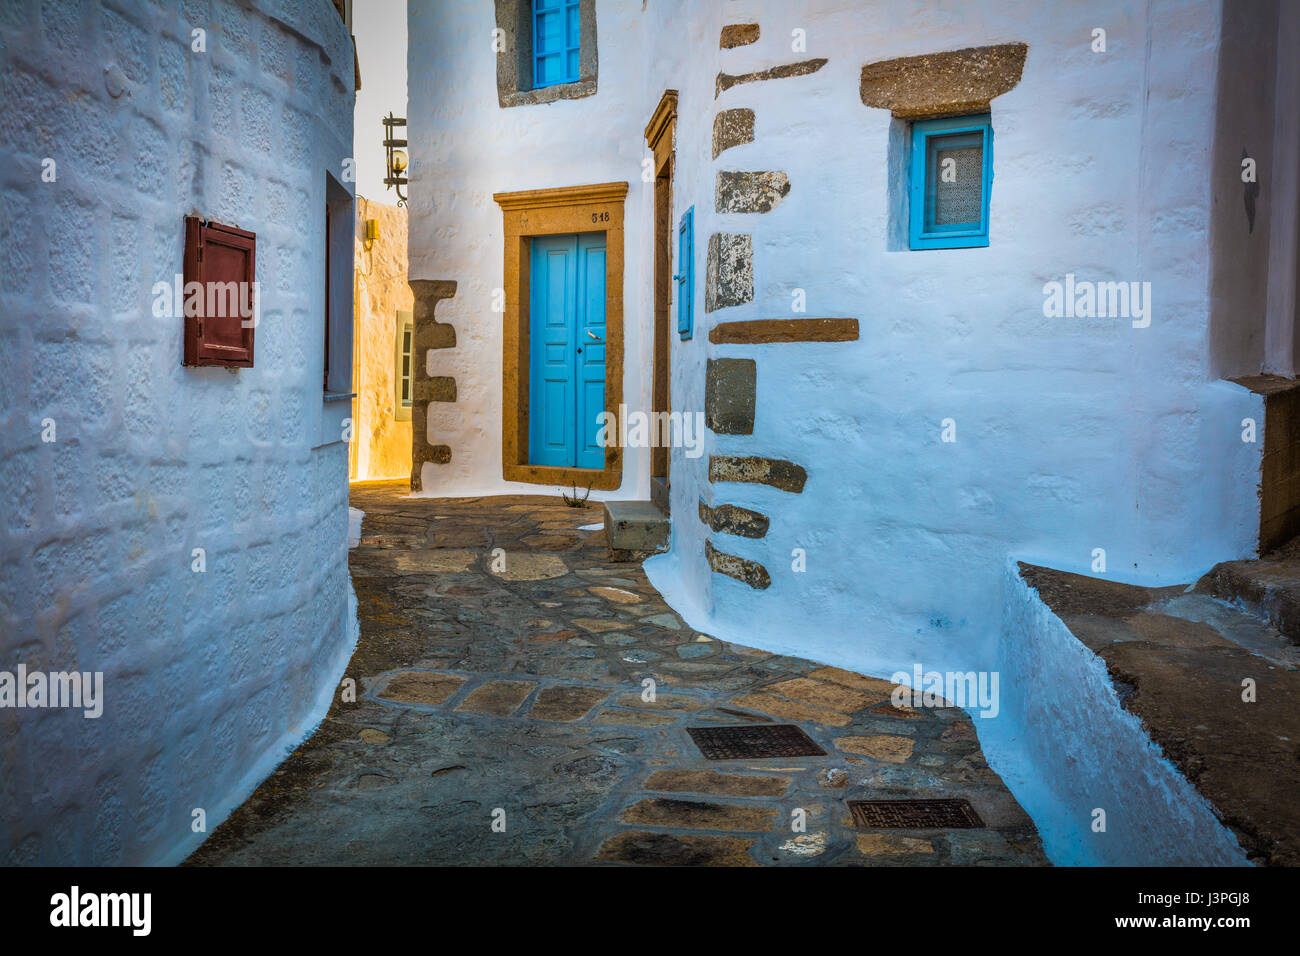 Street in Chora on the greek island of Patmos. Patmos is a small Greek island in the Aegean Sea. - Stock Image